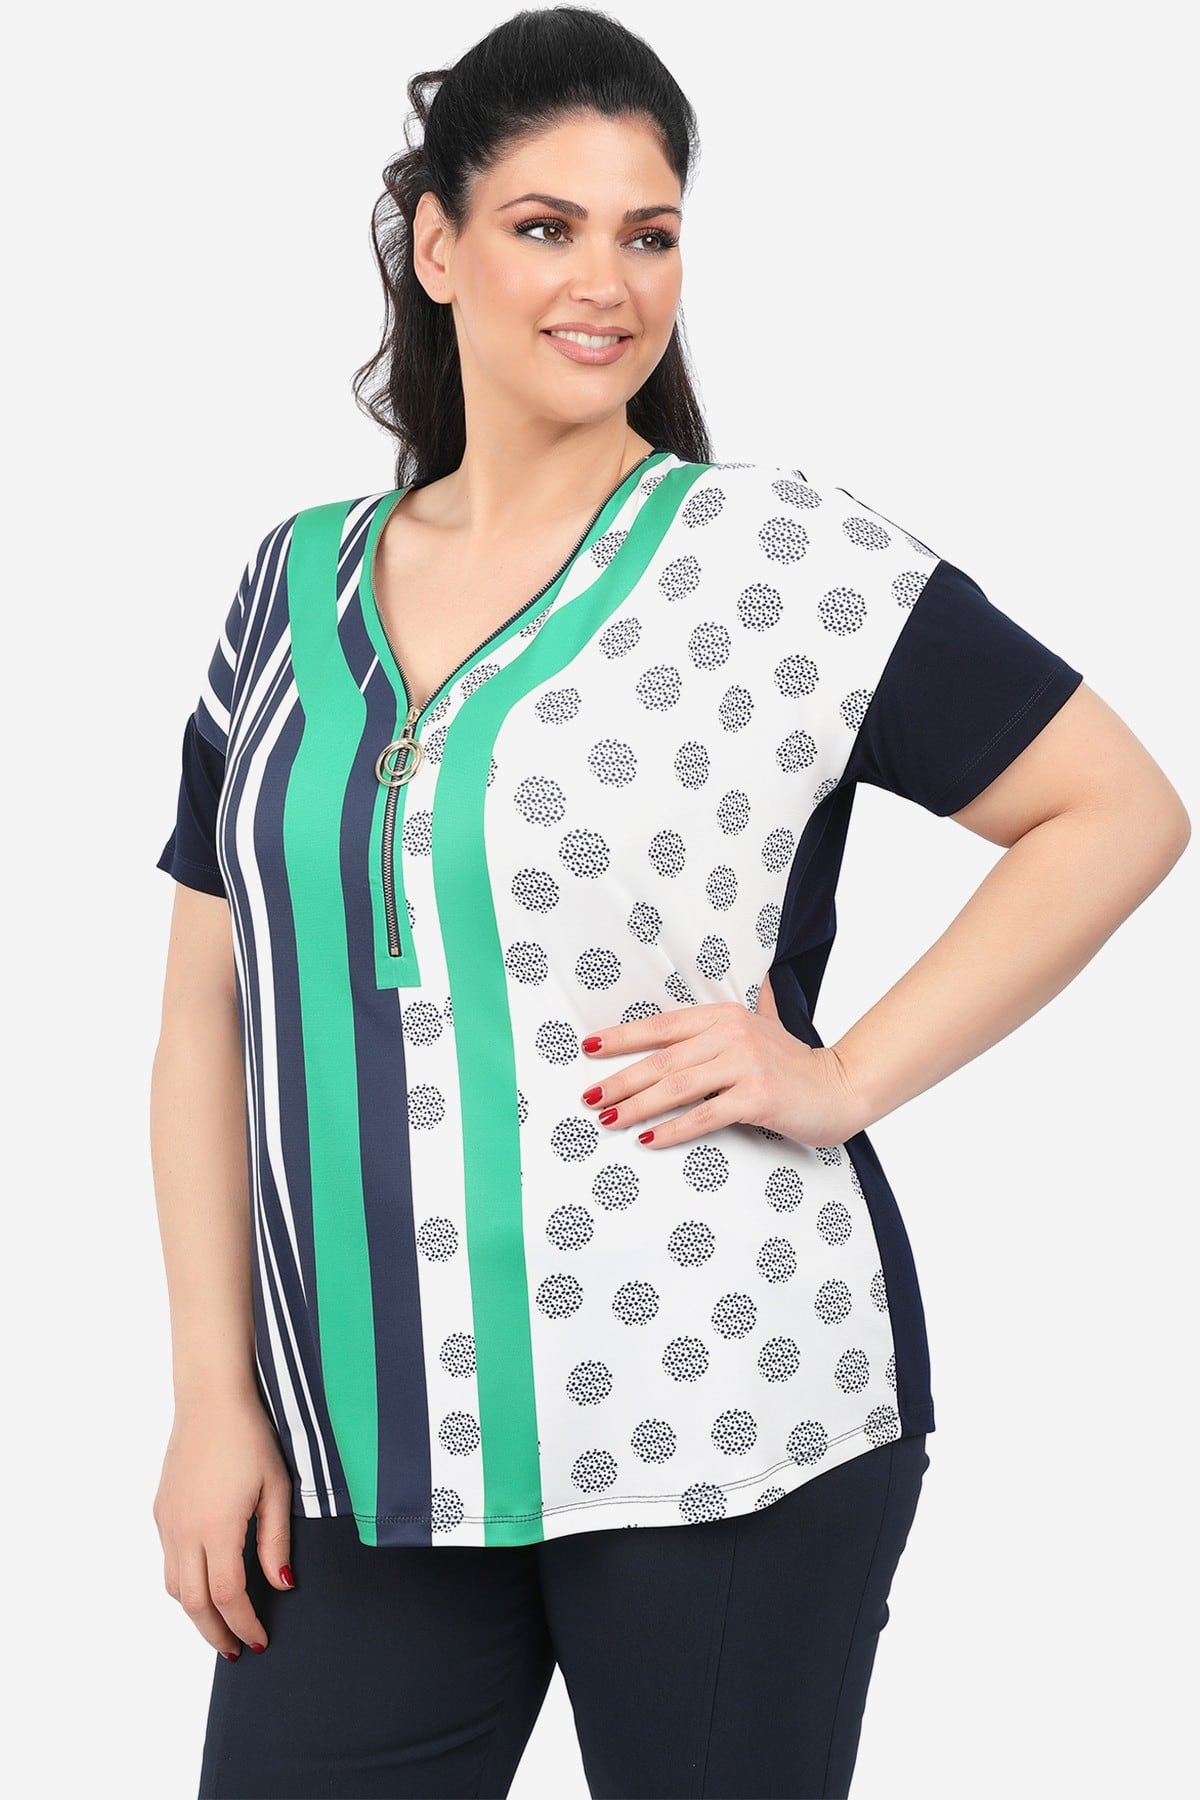 Printed blouse with zipper on the V